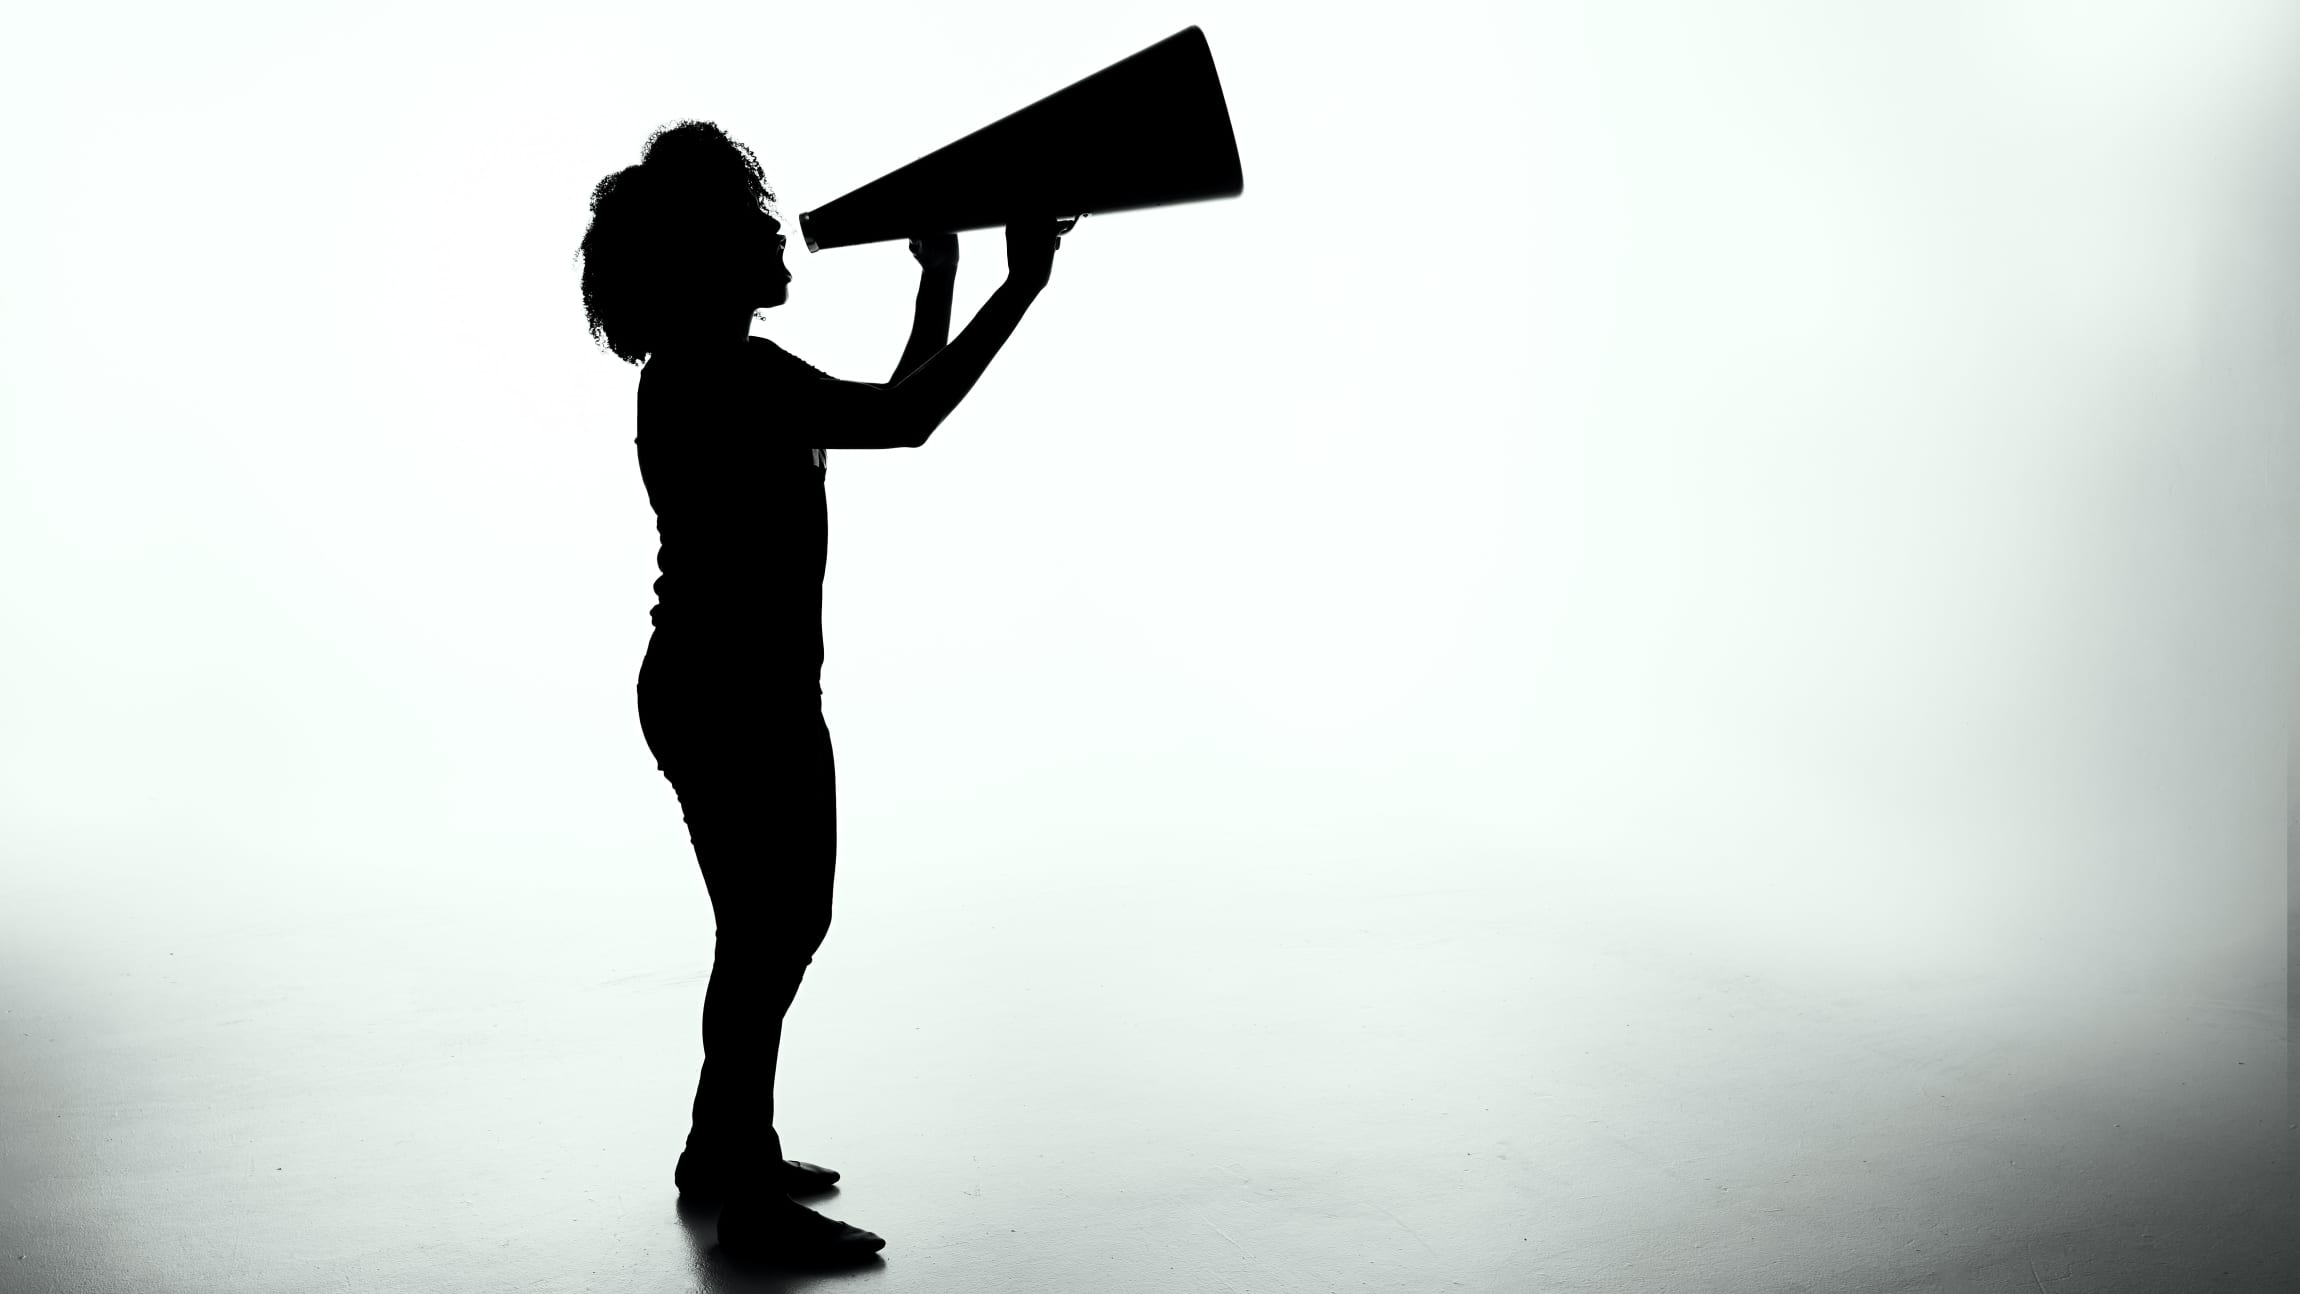 Silhouette of a person yelling into a megaphone.